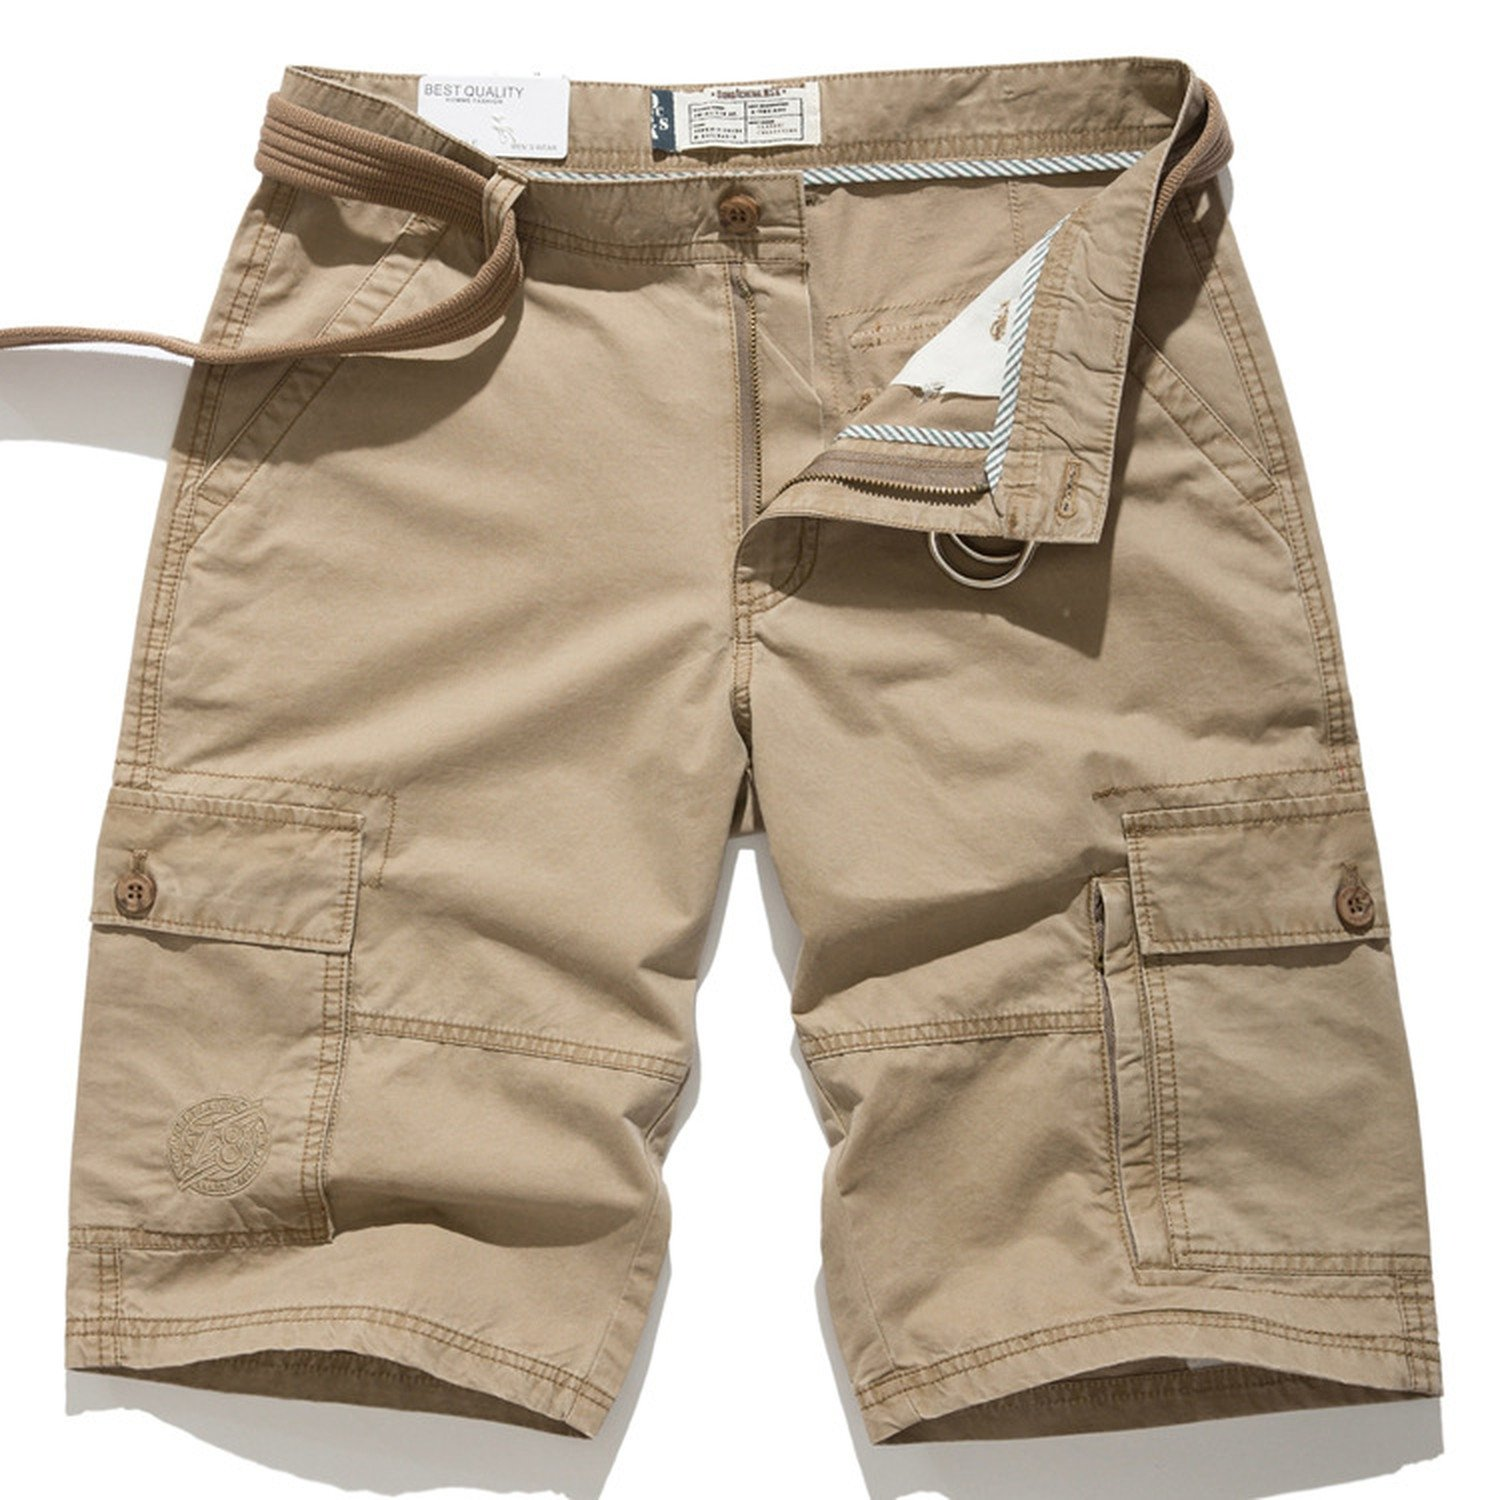 Barry picks Men's Bag Shorts Loose Large Size Men's Casual Pants Trousers,7708 Khaki,31 Waist 2 Feet 37